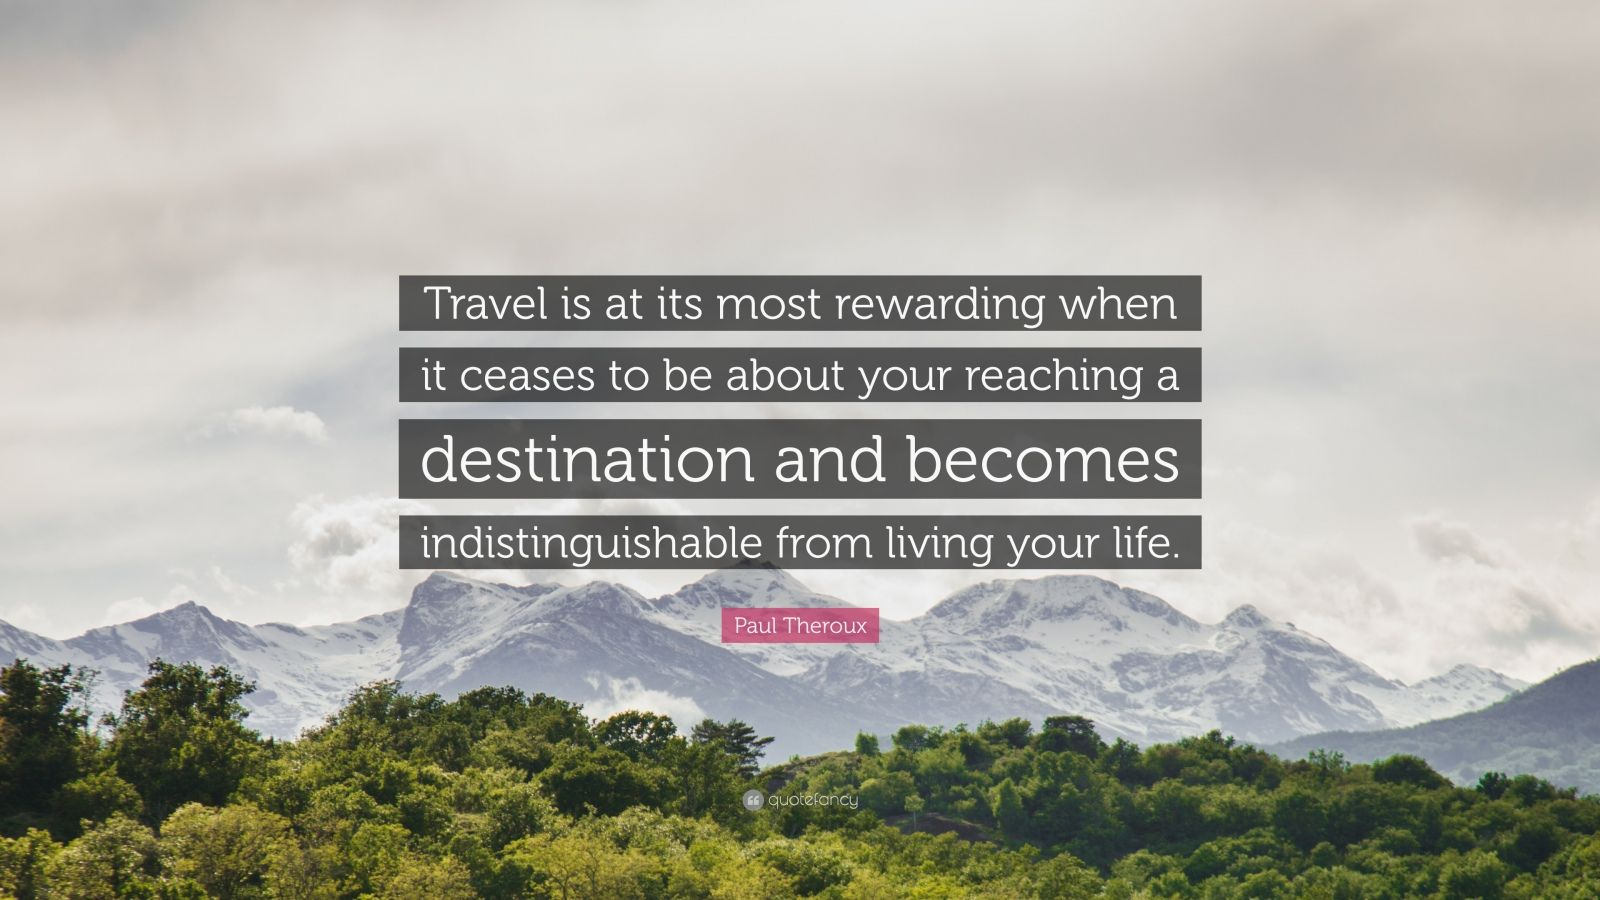 """Paul Theroux Quote: """"Travel is at its most rewarding when it ceases to be about your reaching a destination and becomes indistinguishable from living your life."""""""